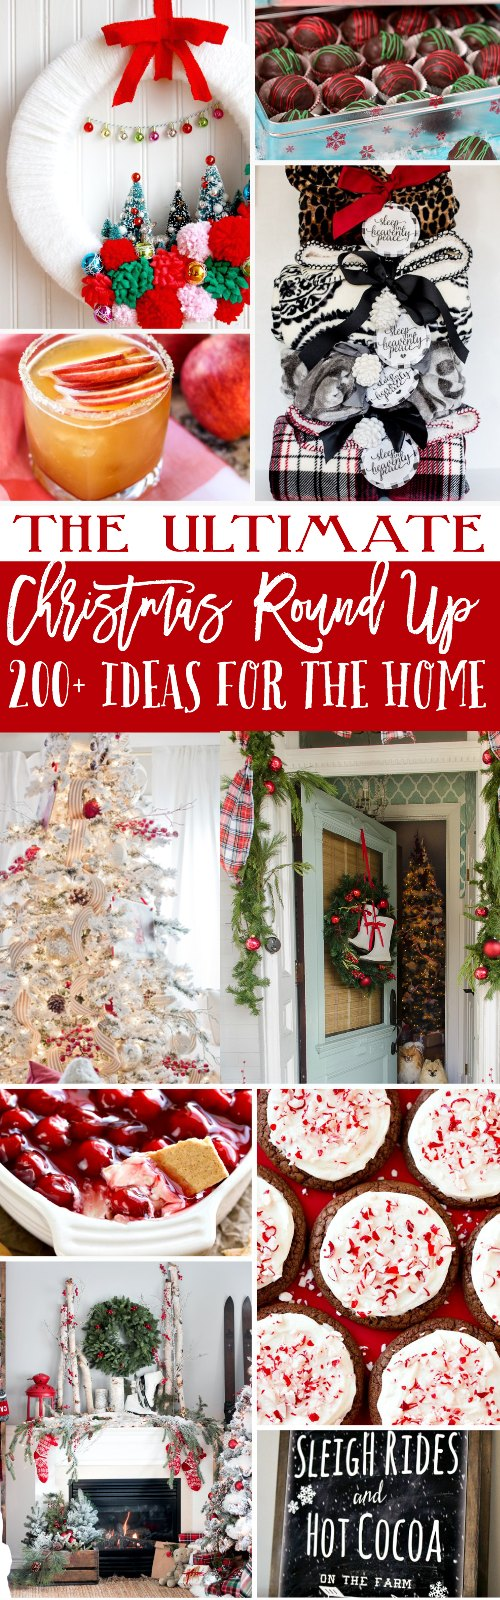 The Ultimate Christmas Round Up! Over 200+ ideas for your home's decor, gifts to make & things to bake.